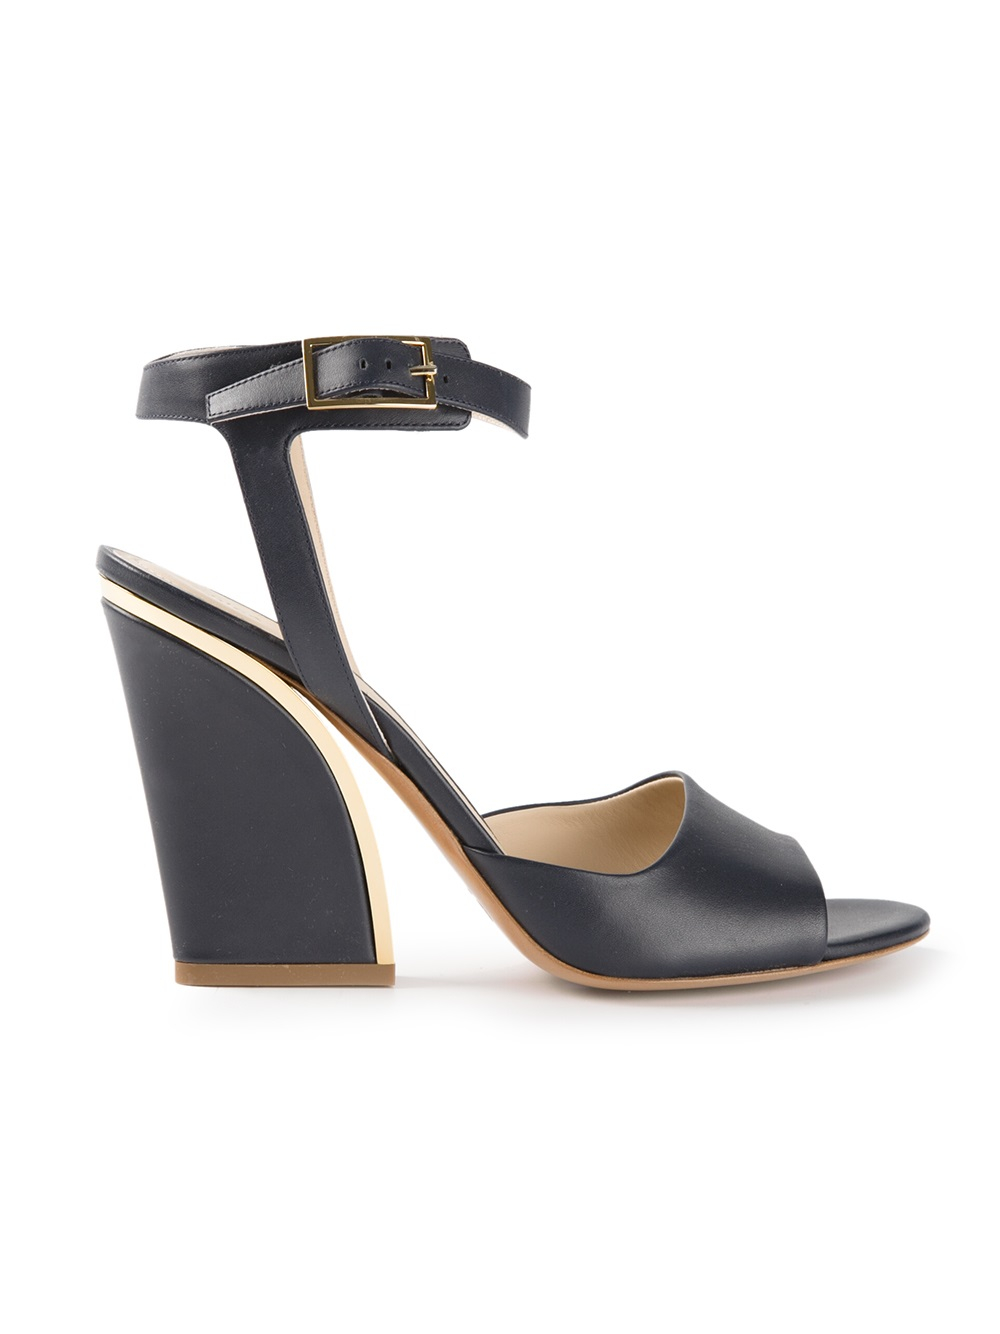 Chloé Chunky Heel Sandals in Blue | Lyst